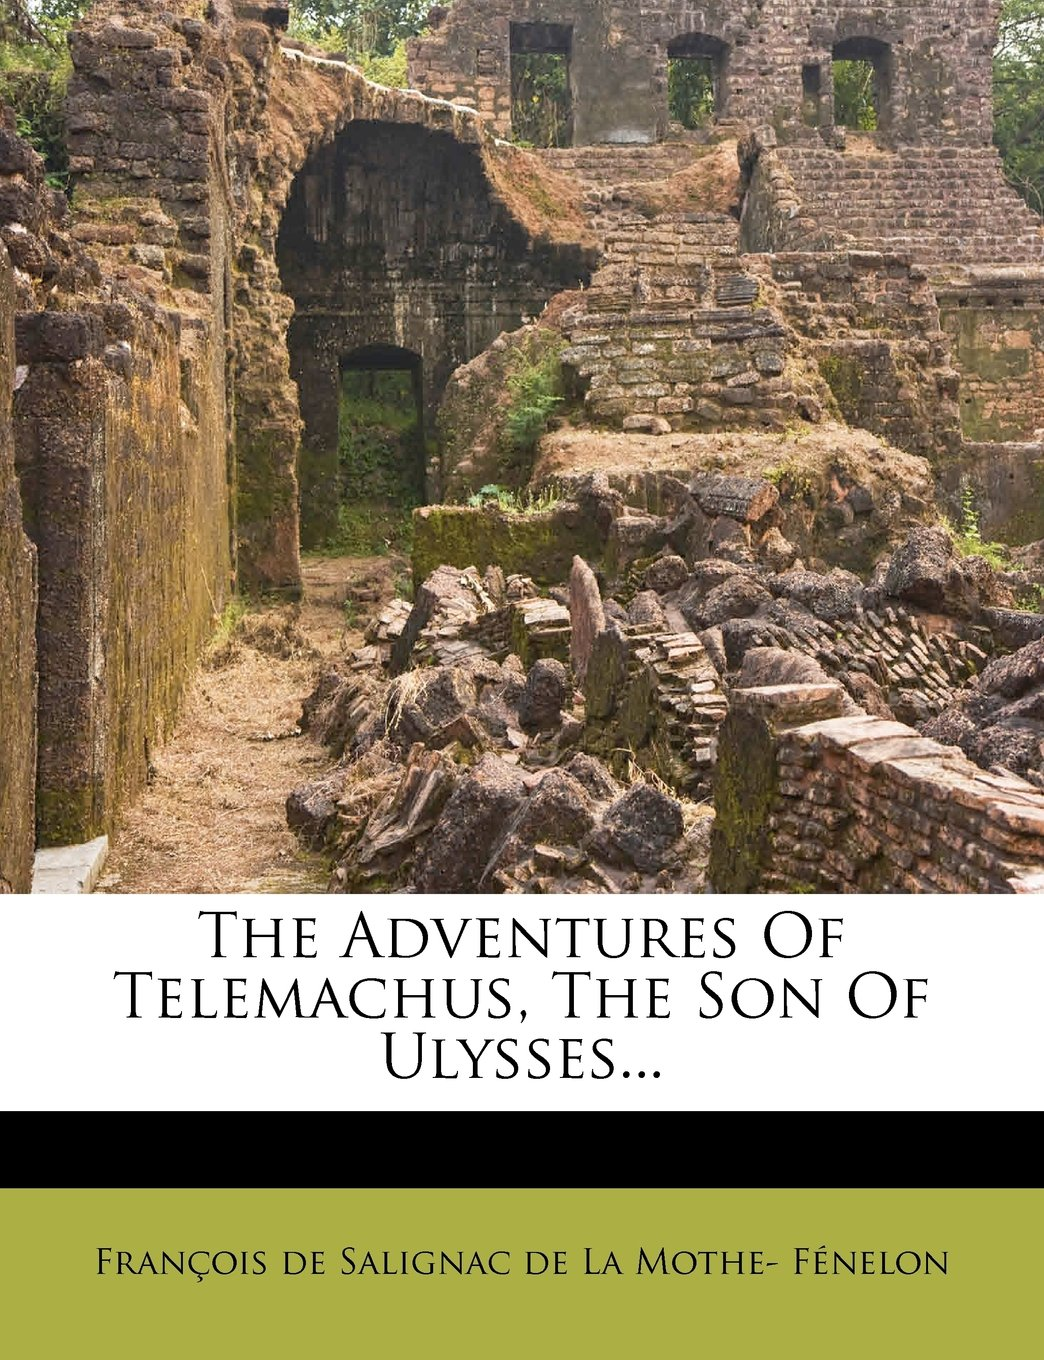 Read Online The Adventures Of Telemachus, The Son Of Ulysses... PDF